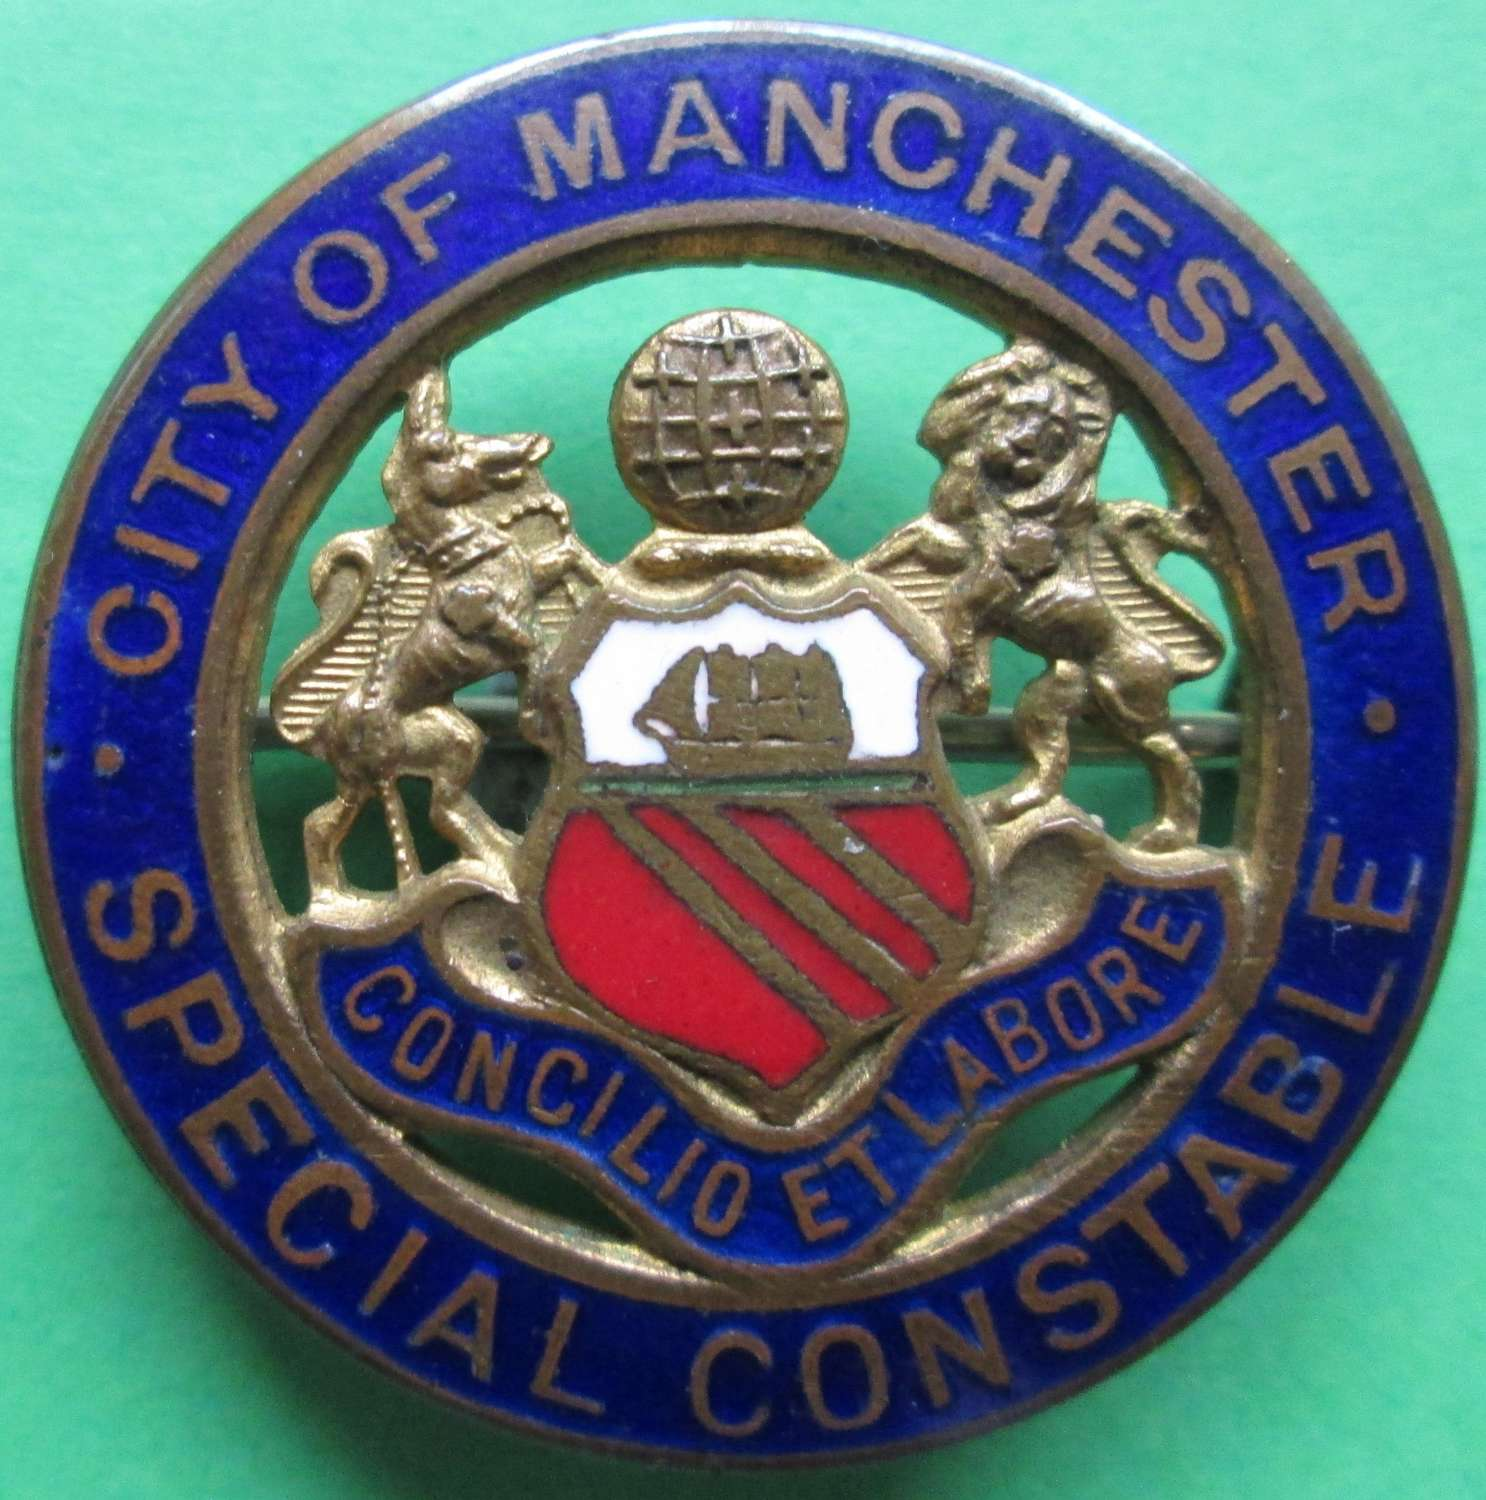 A GOOD WWI PERIOD CITY OF MANCHESTER SPECIAL CONSTABLE BADGE